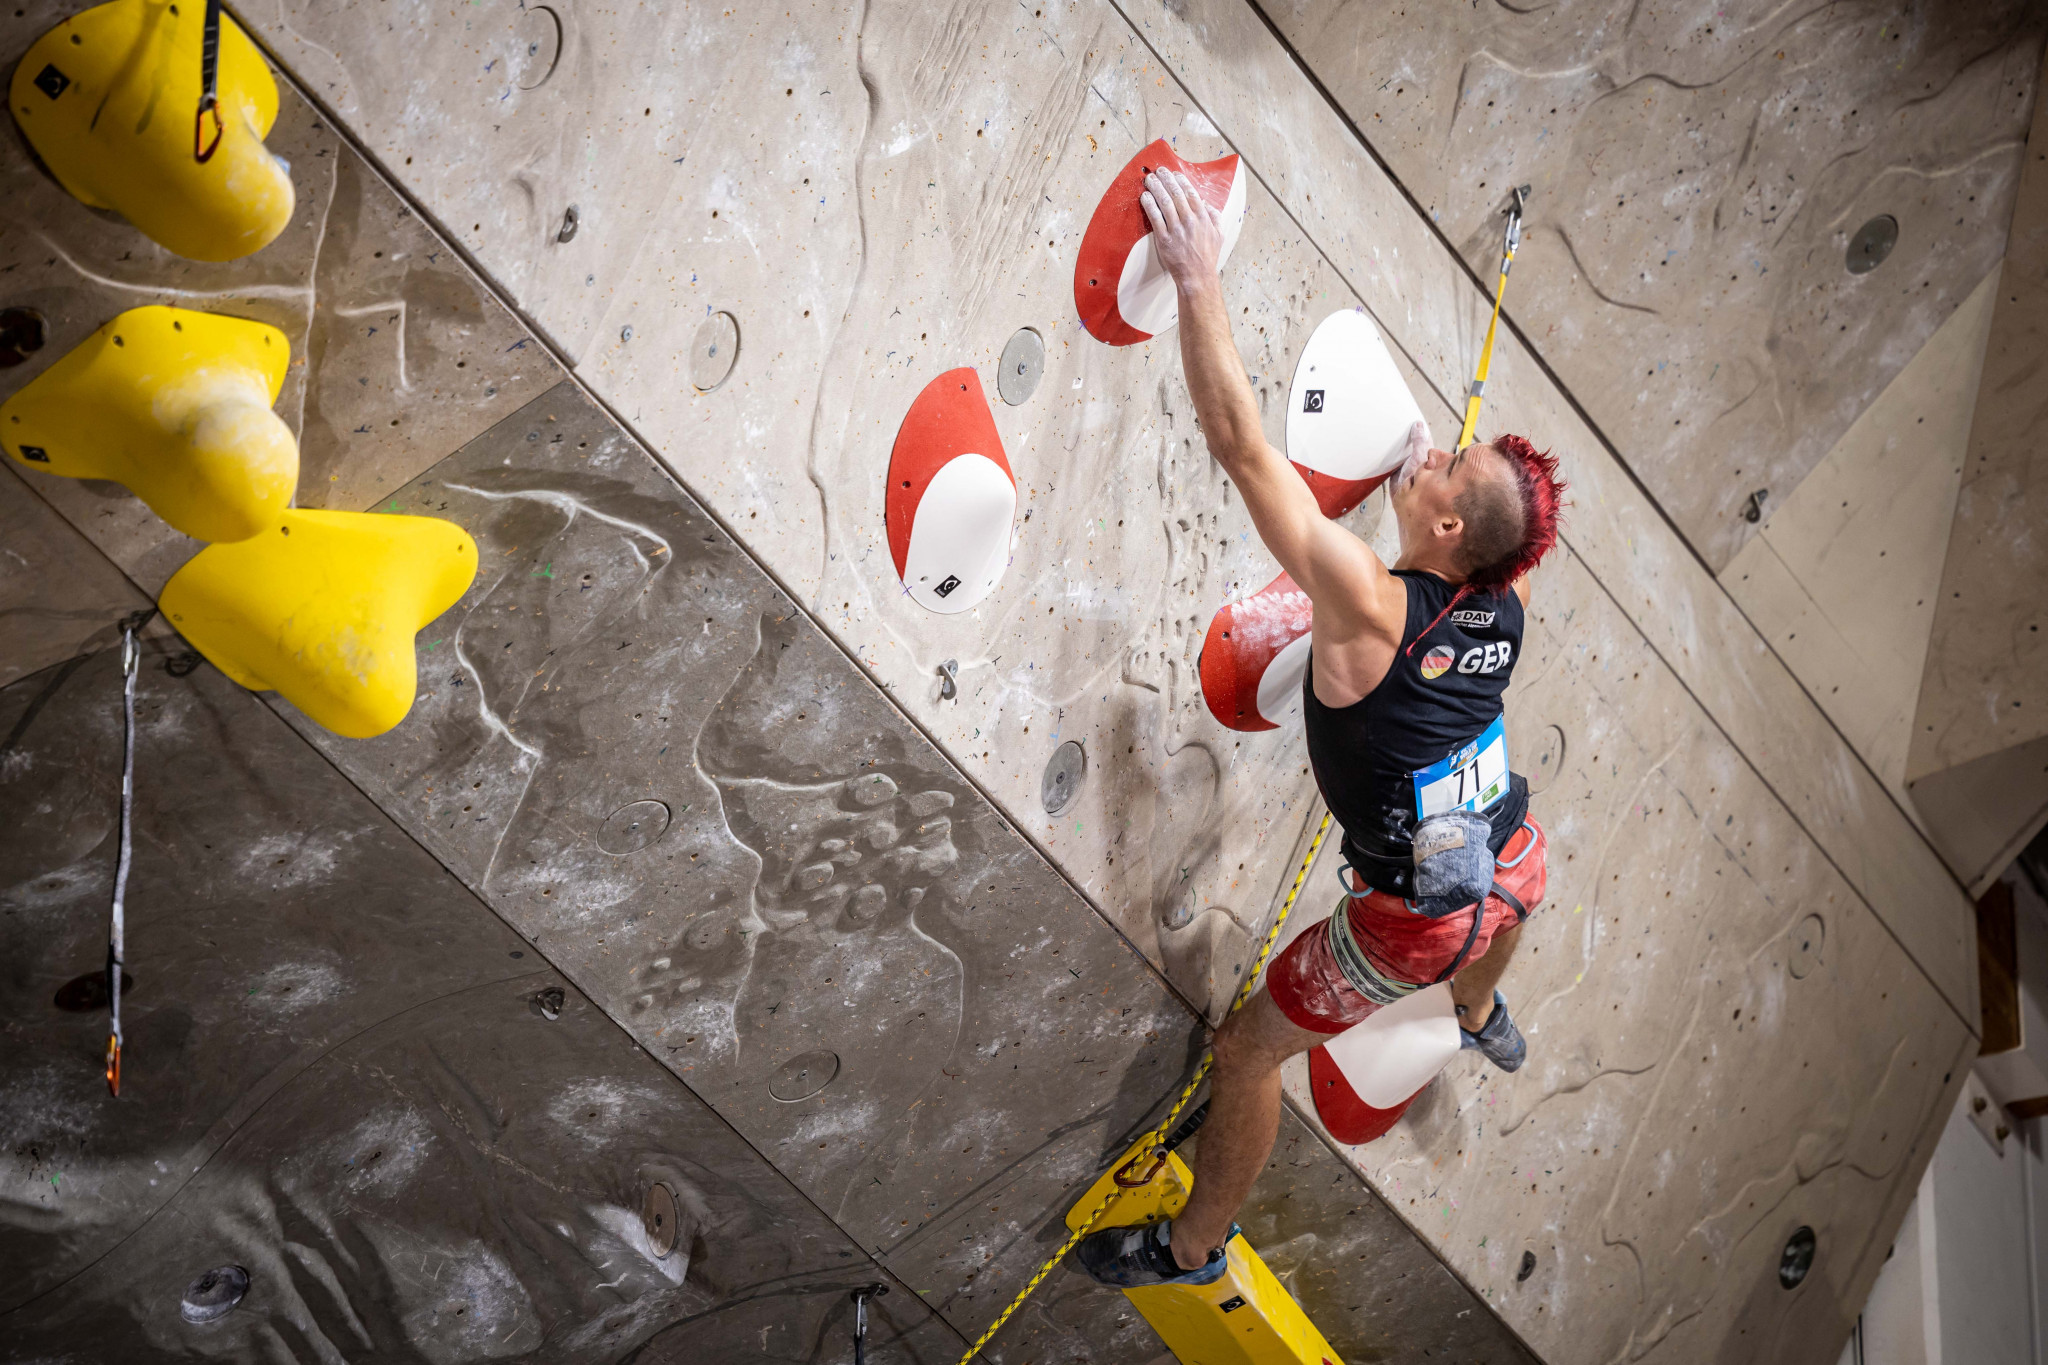 IFSC World Cup in Seoul cancelled less than two weeks before event